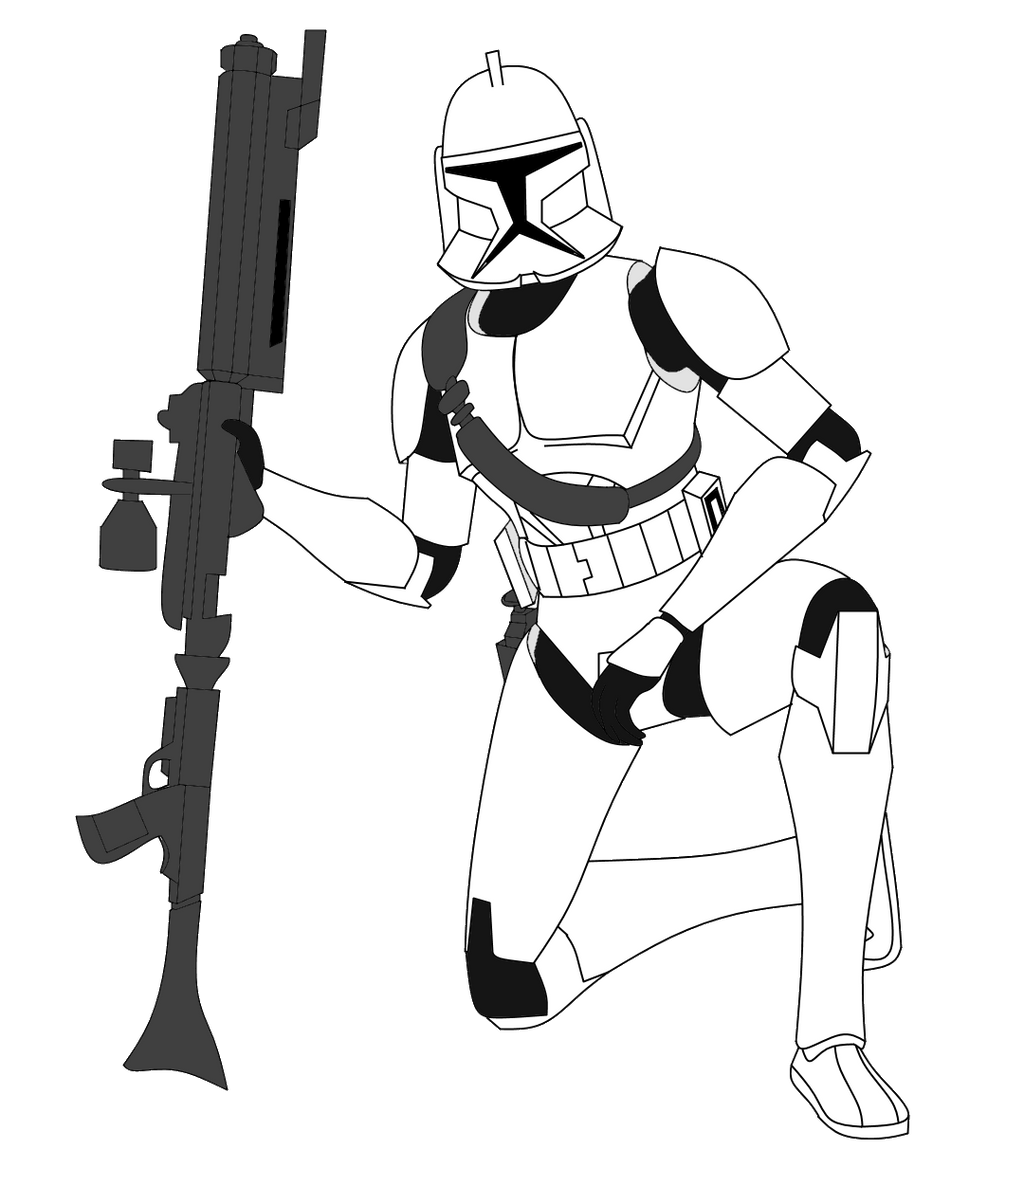 clone trooper with strap and dc 15a by fbombheart on deviantart